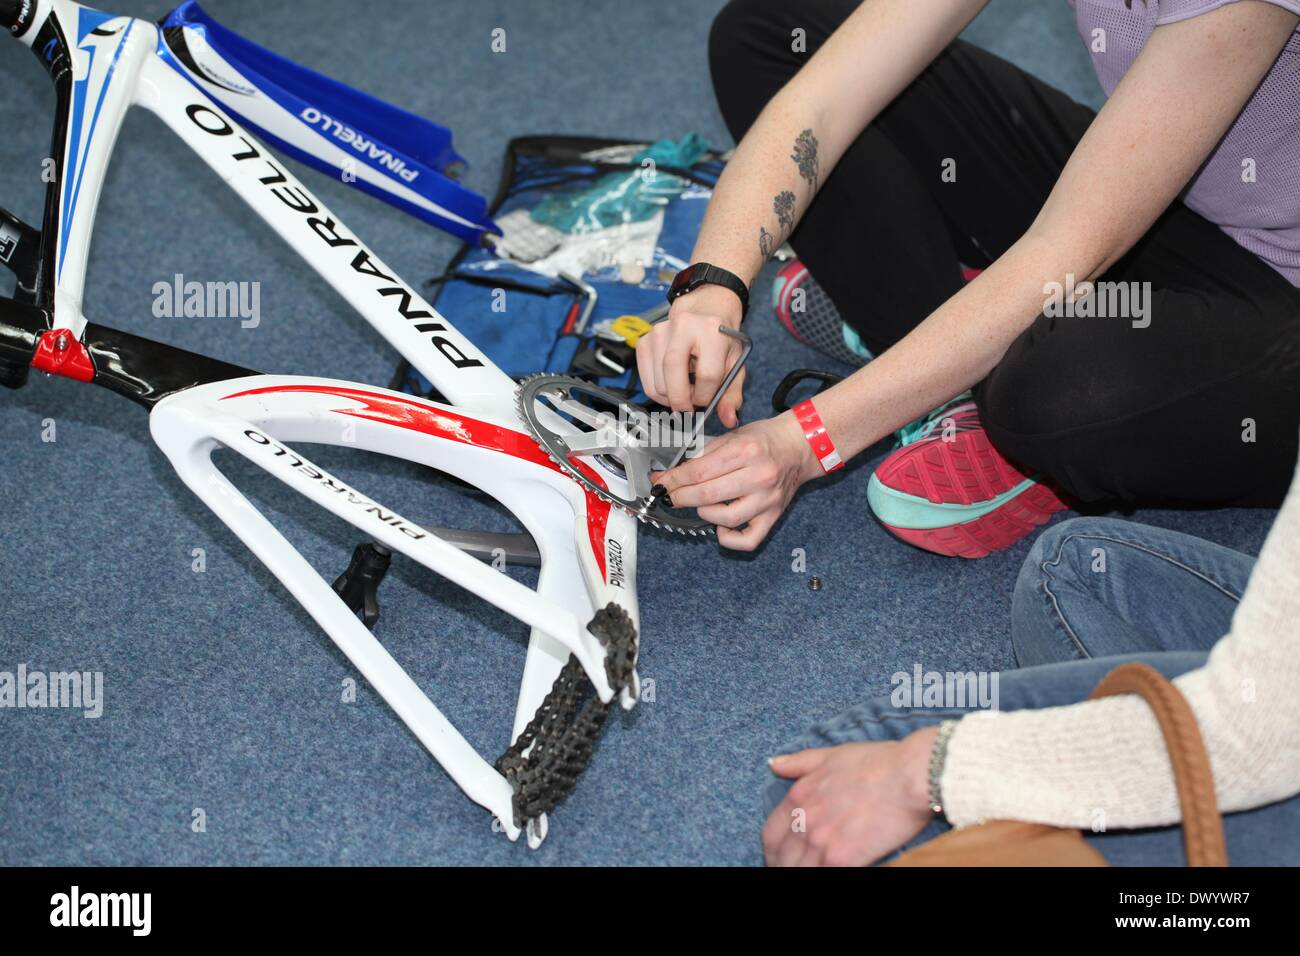 Lee Valley VeloPark, London, UK. 15th March 2014. Revolution Series Track Cycling Round 5, day 2. Katie Archibald changing her gearing ratio prior to the afternoon session Credit:  Neville Styles/Alamy Live News - Stock Image